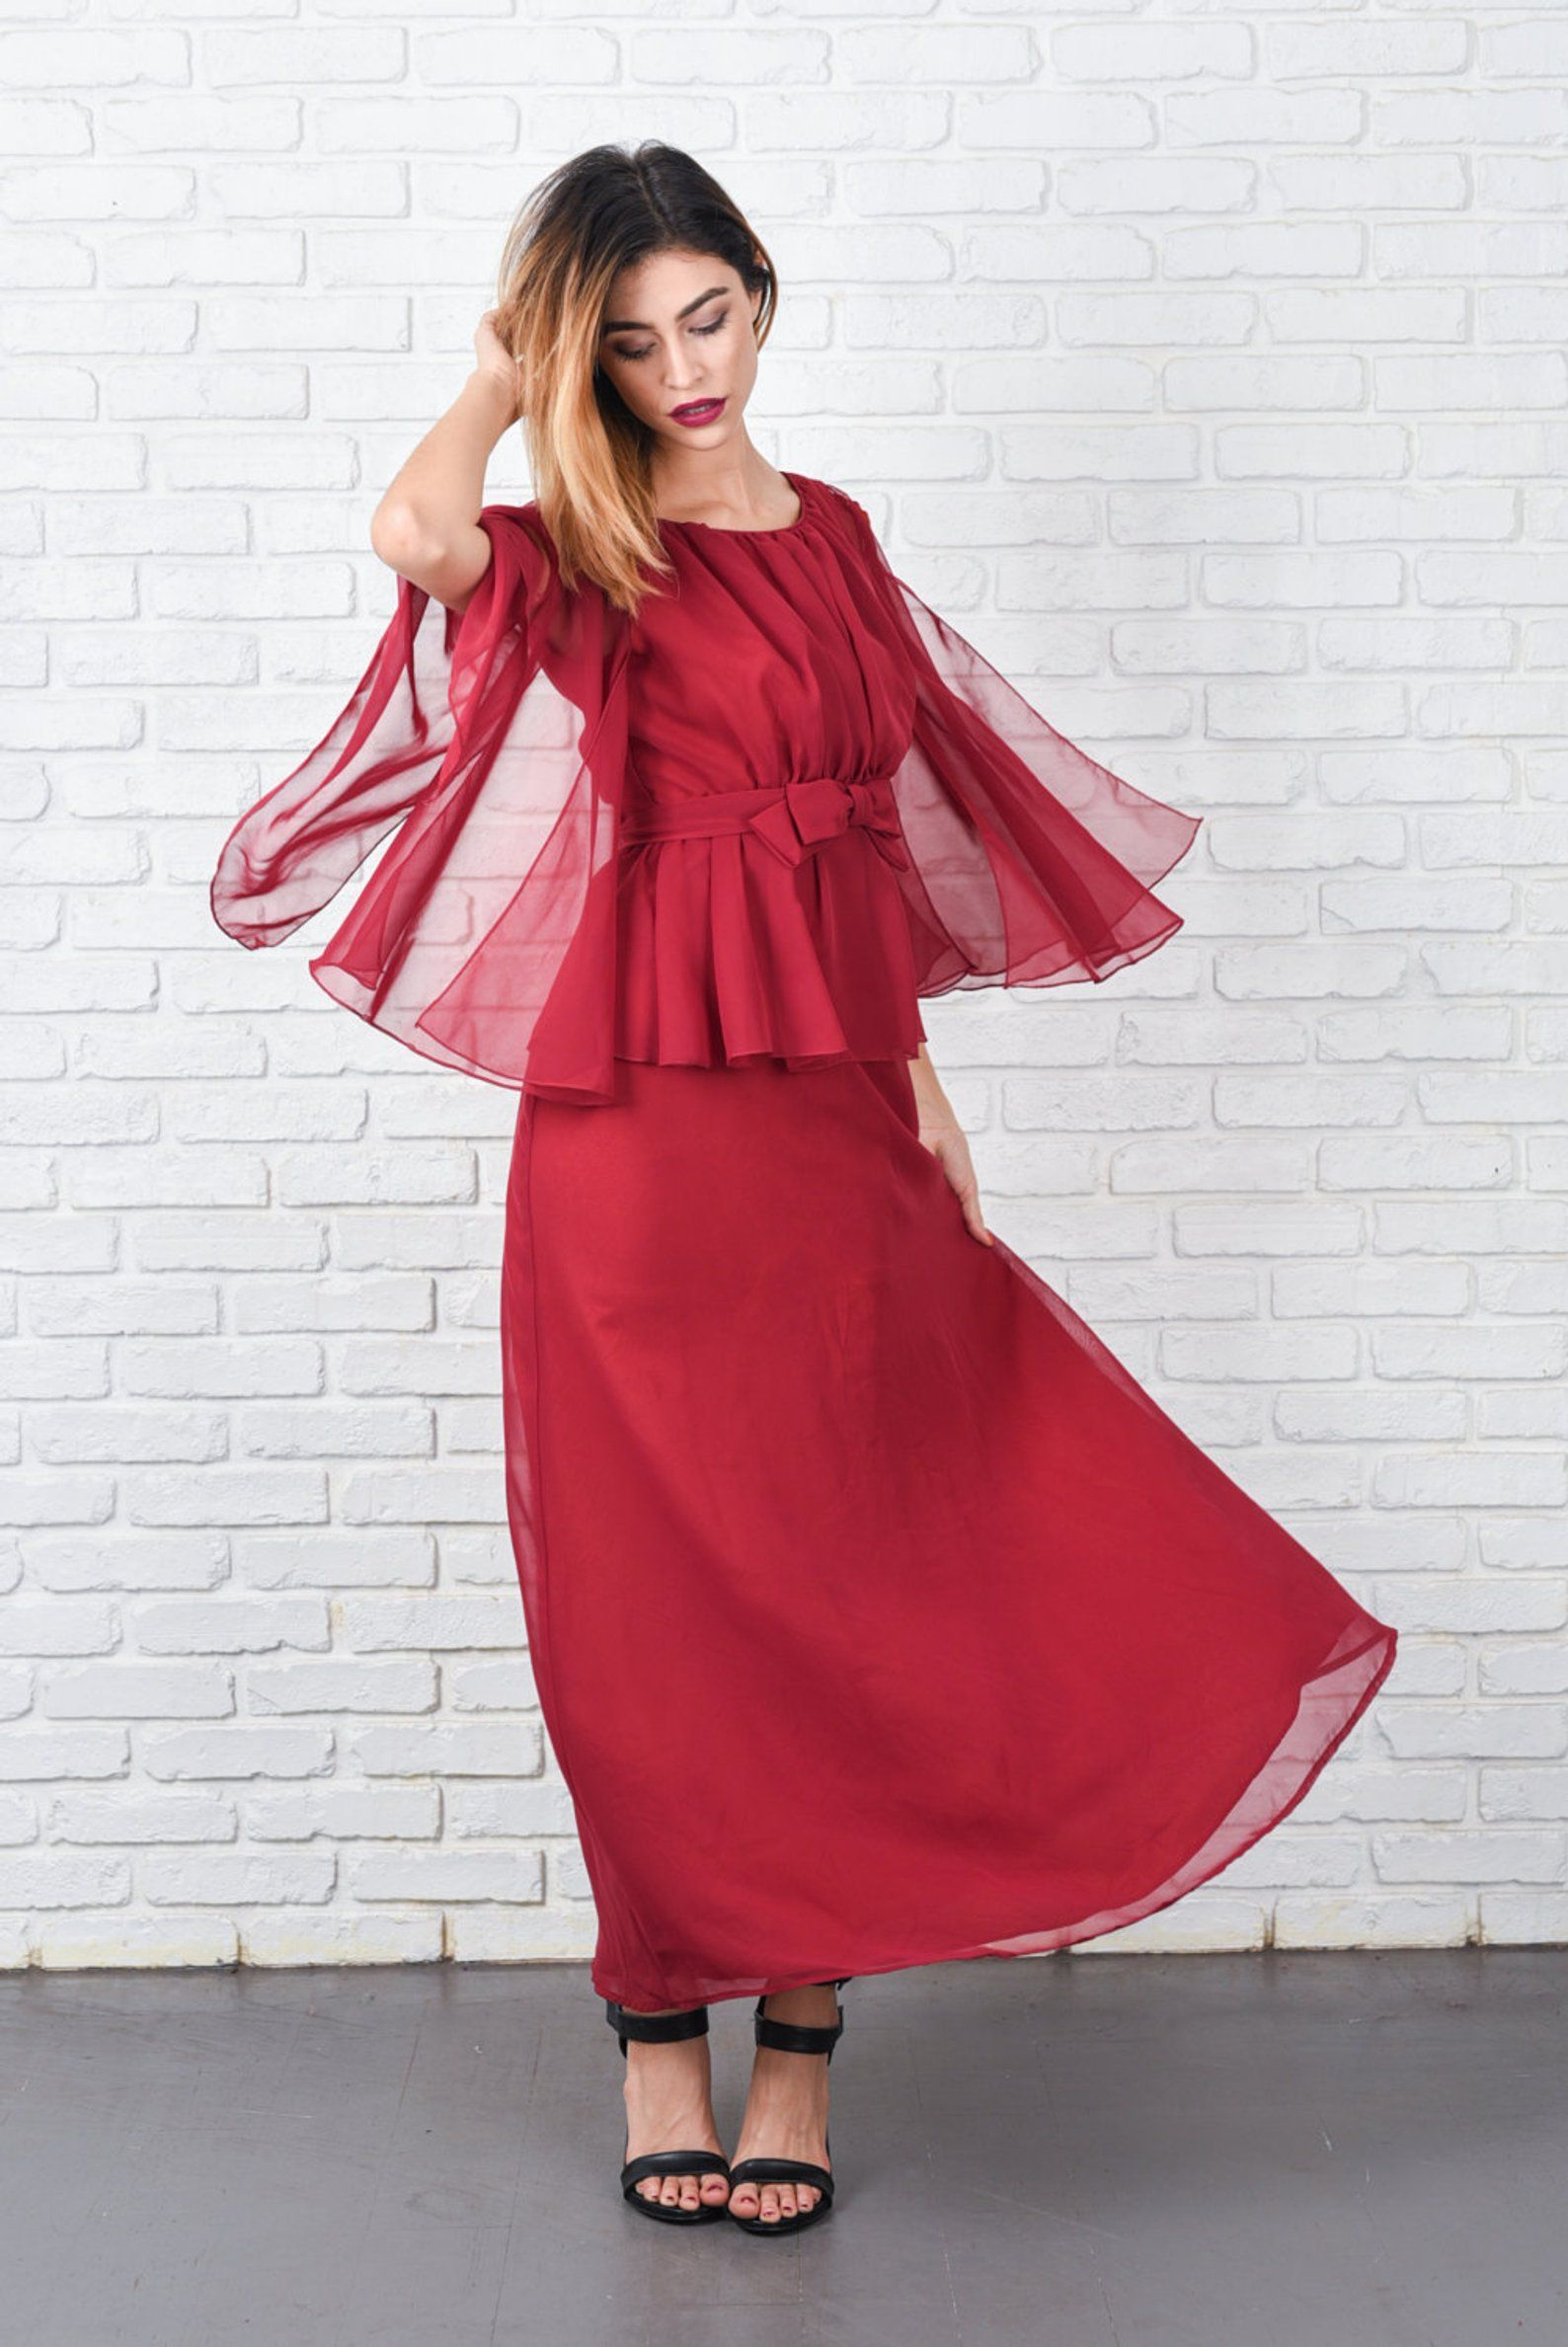 204021a0bb Cranberry Red Boho Dress Vintage 70s Sheer Cutout Slv Angel Bow ...